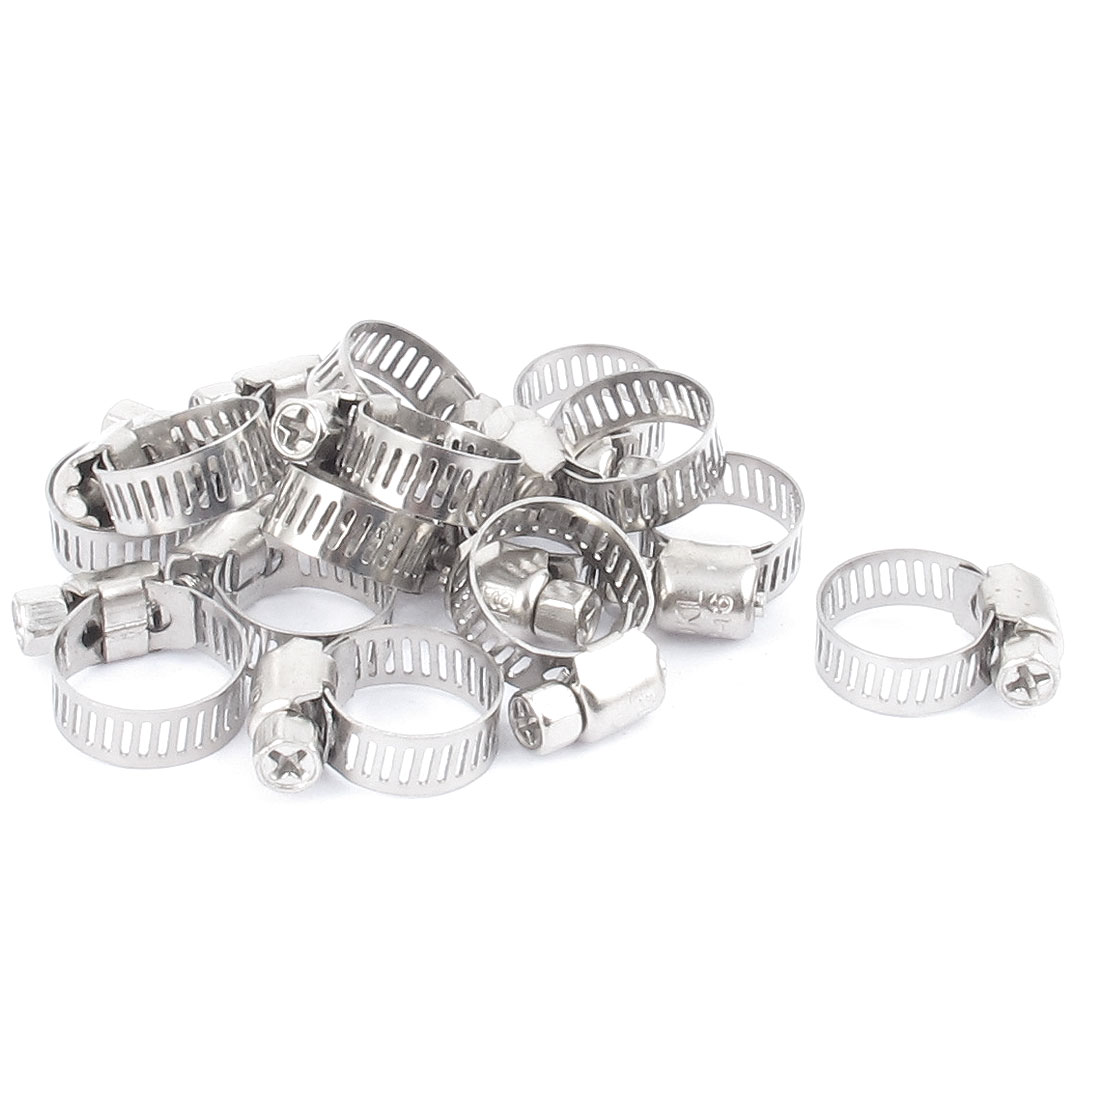 16pcs 8mm Wide Adjustable 9mm-16mm Worm Drive Hose Pipe Tight Fastener Clamp Clip Hoop